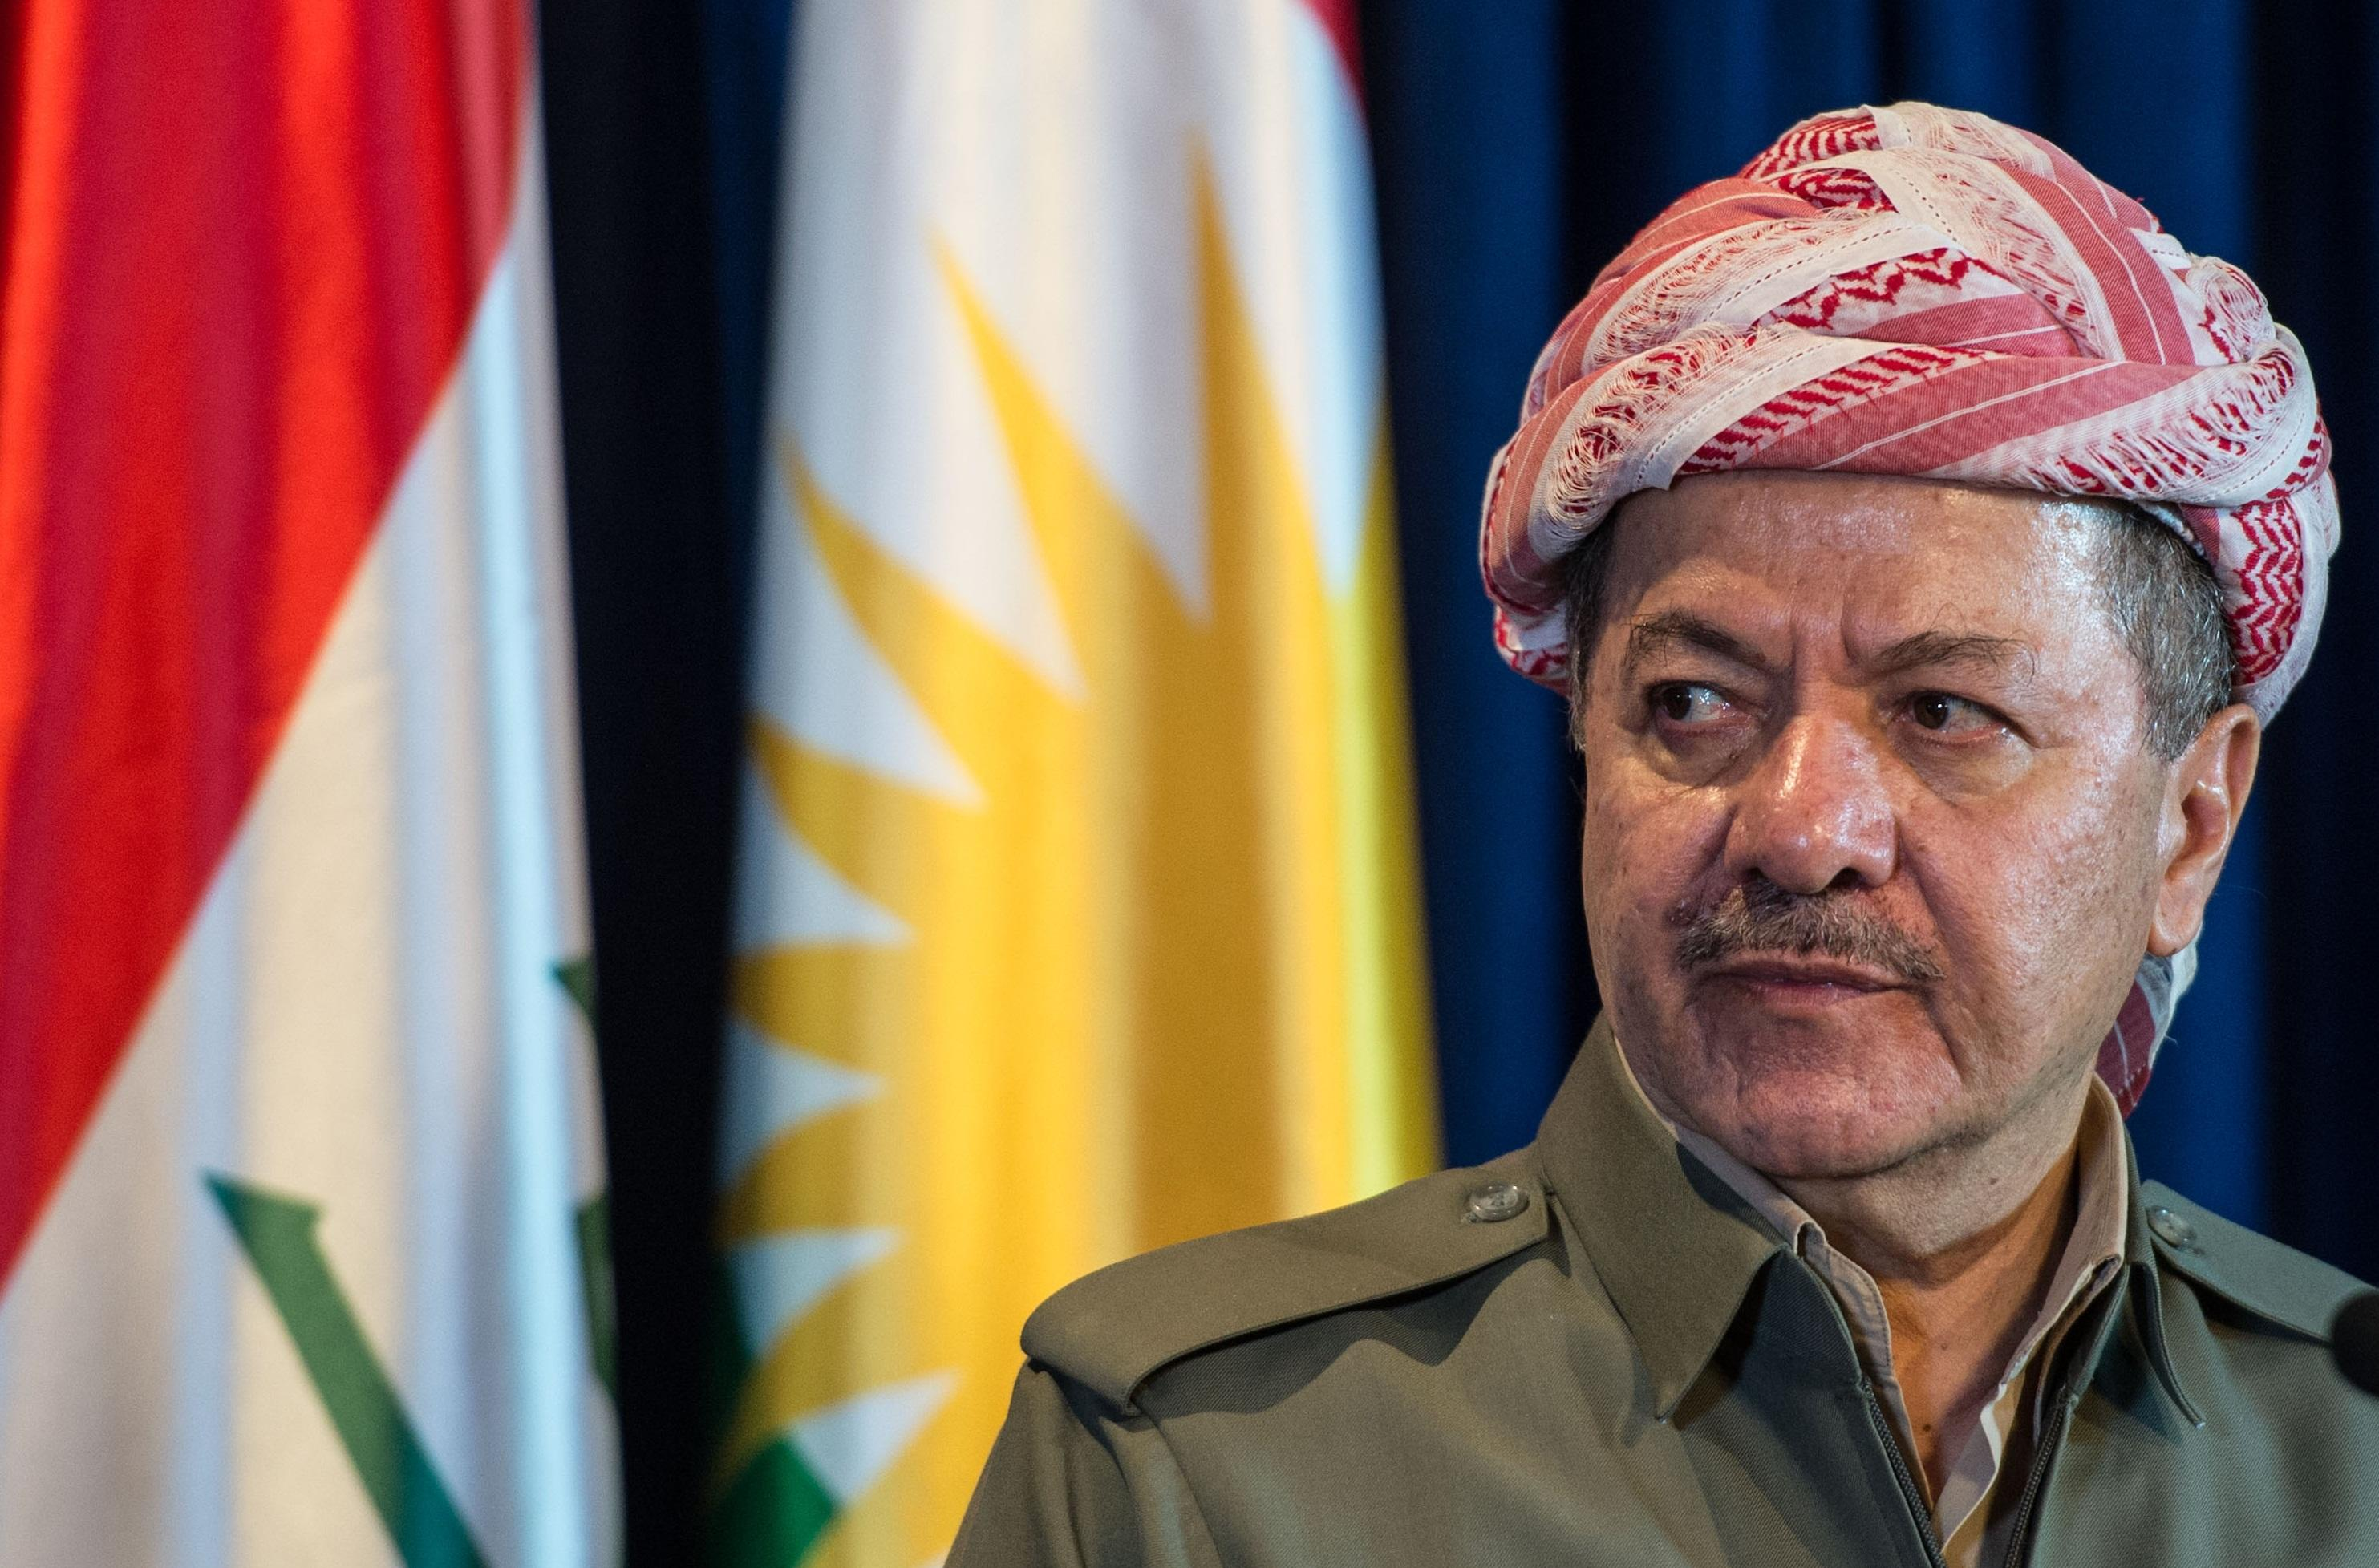 Who Is Stopping the Kurdish Leaders Visiting the U.S.?